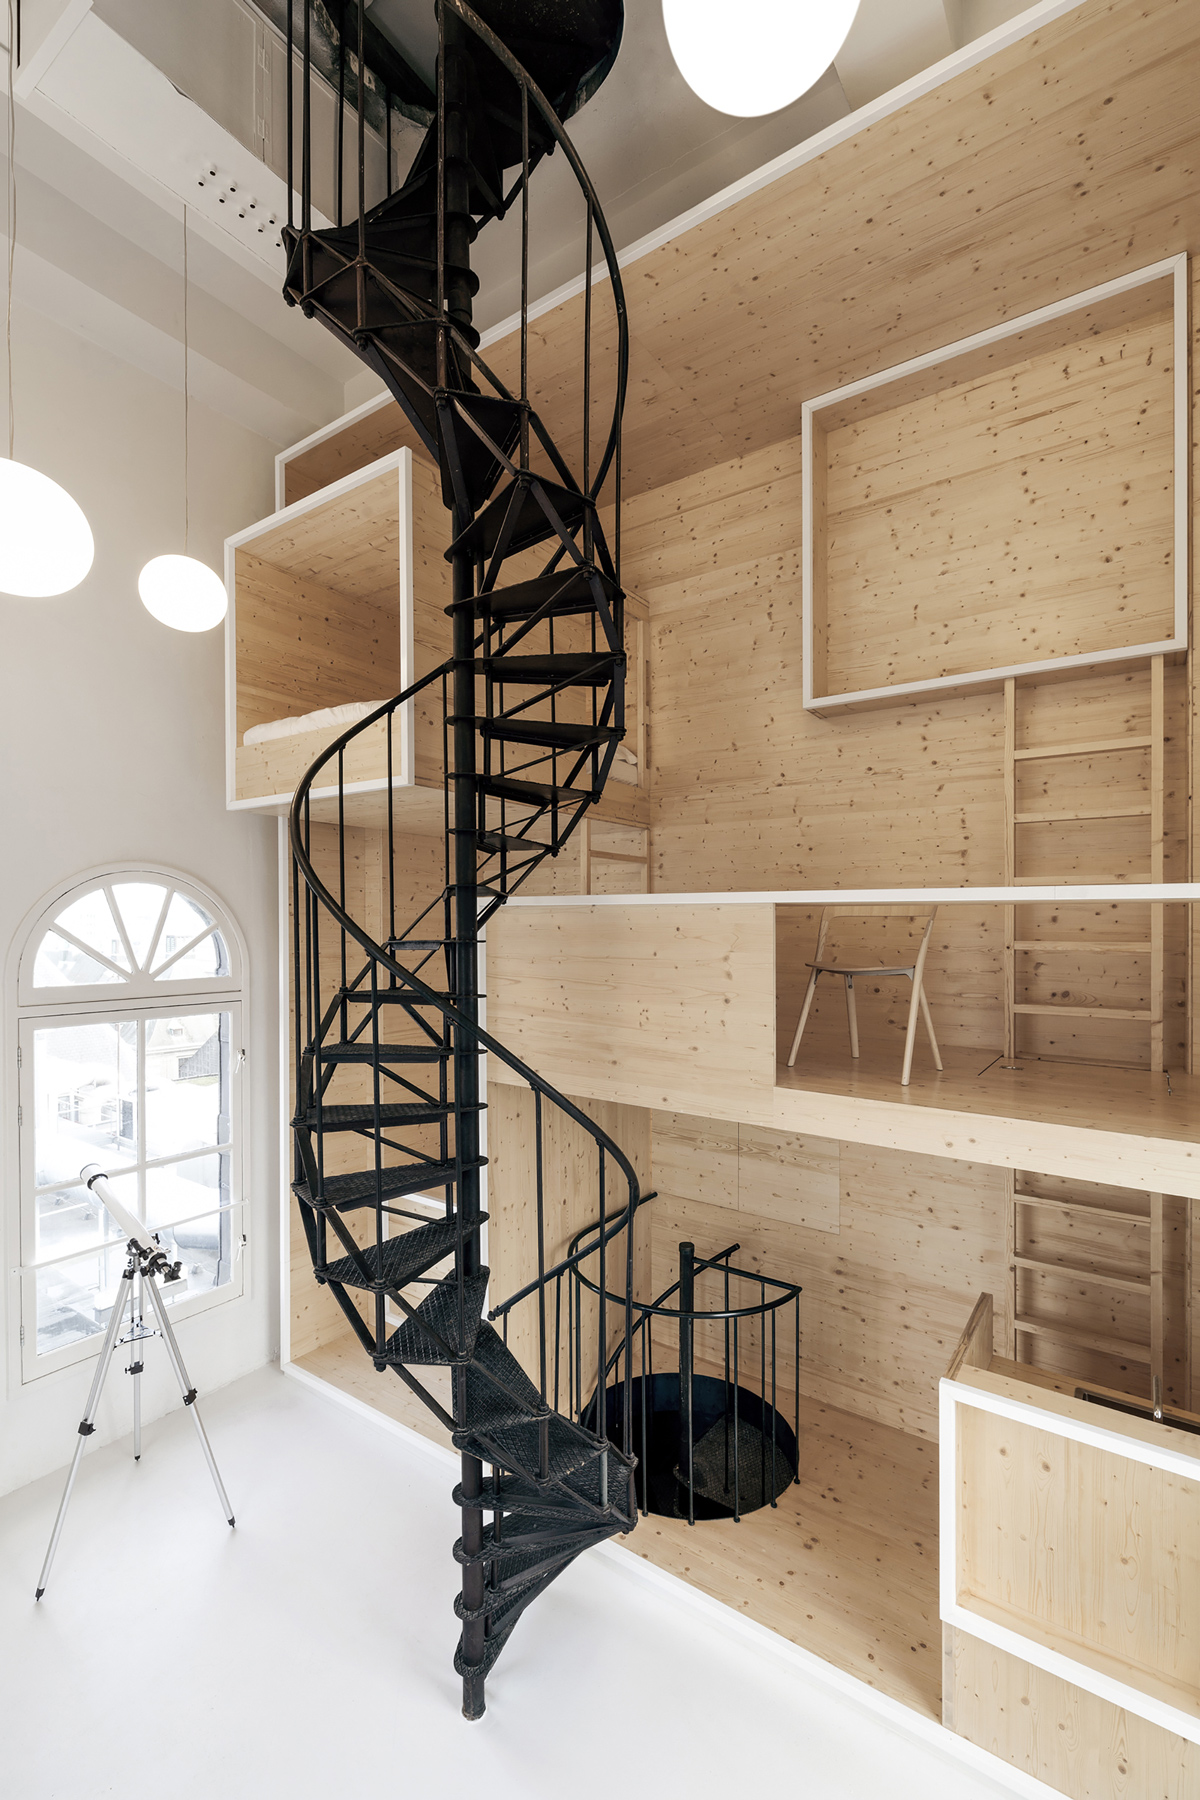 Room On The Roof / i29 interior architects (6)